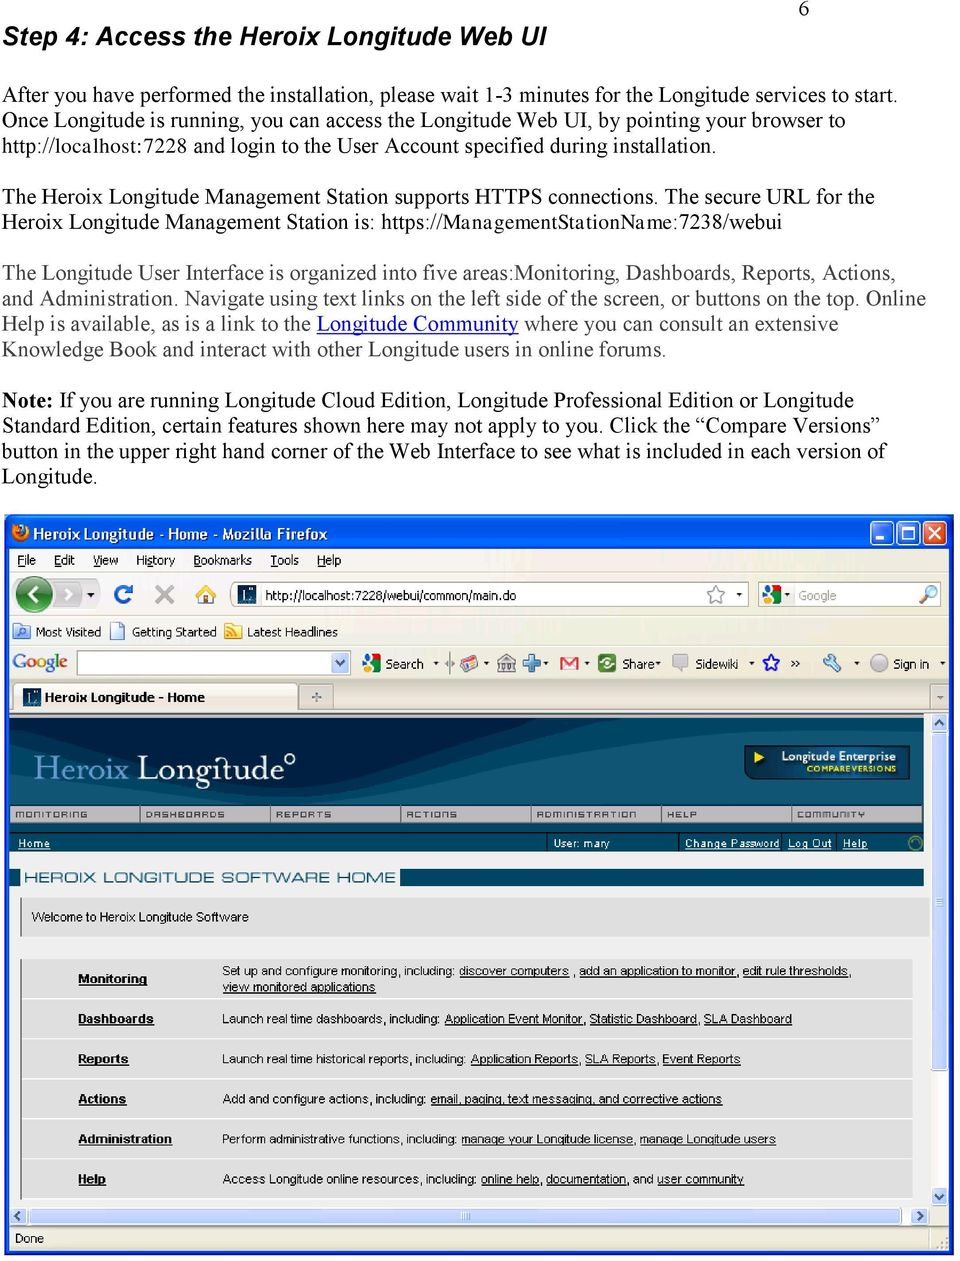 The Heroix Longitude Management Station supports HTTPS connections.